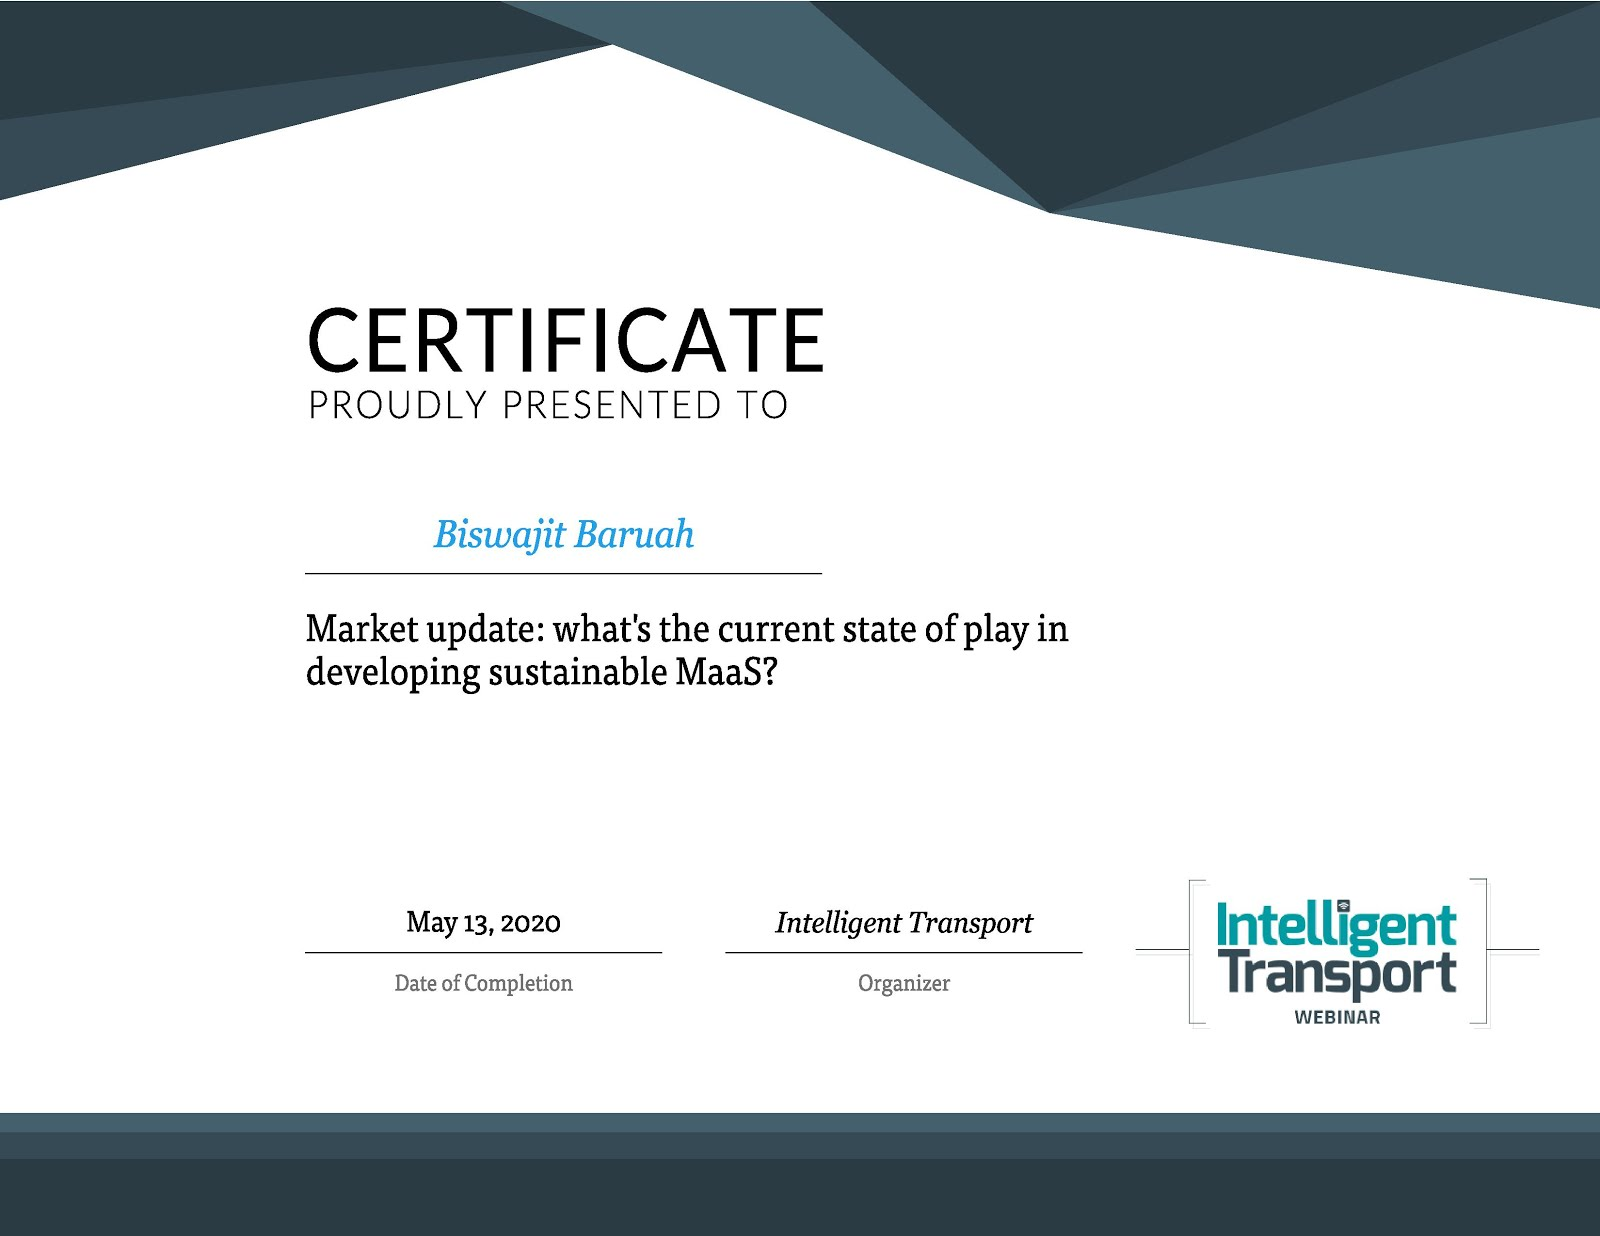 CERTIFICATE FOR ATTENDING INTELLIGENT TRANSPORT (UNITED KINGDOM) WEBINAR ON MOBILITY AS A SERVICE